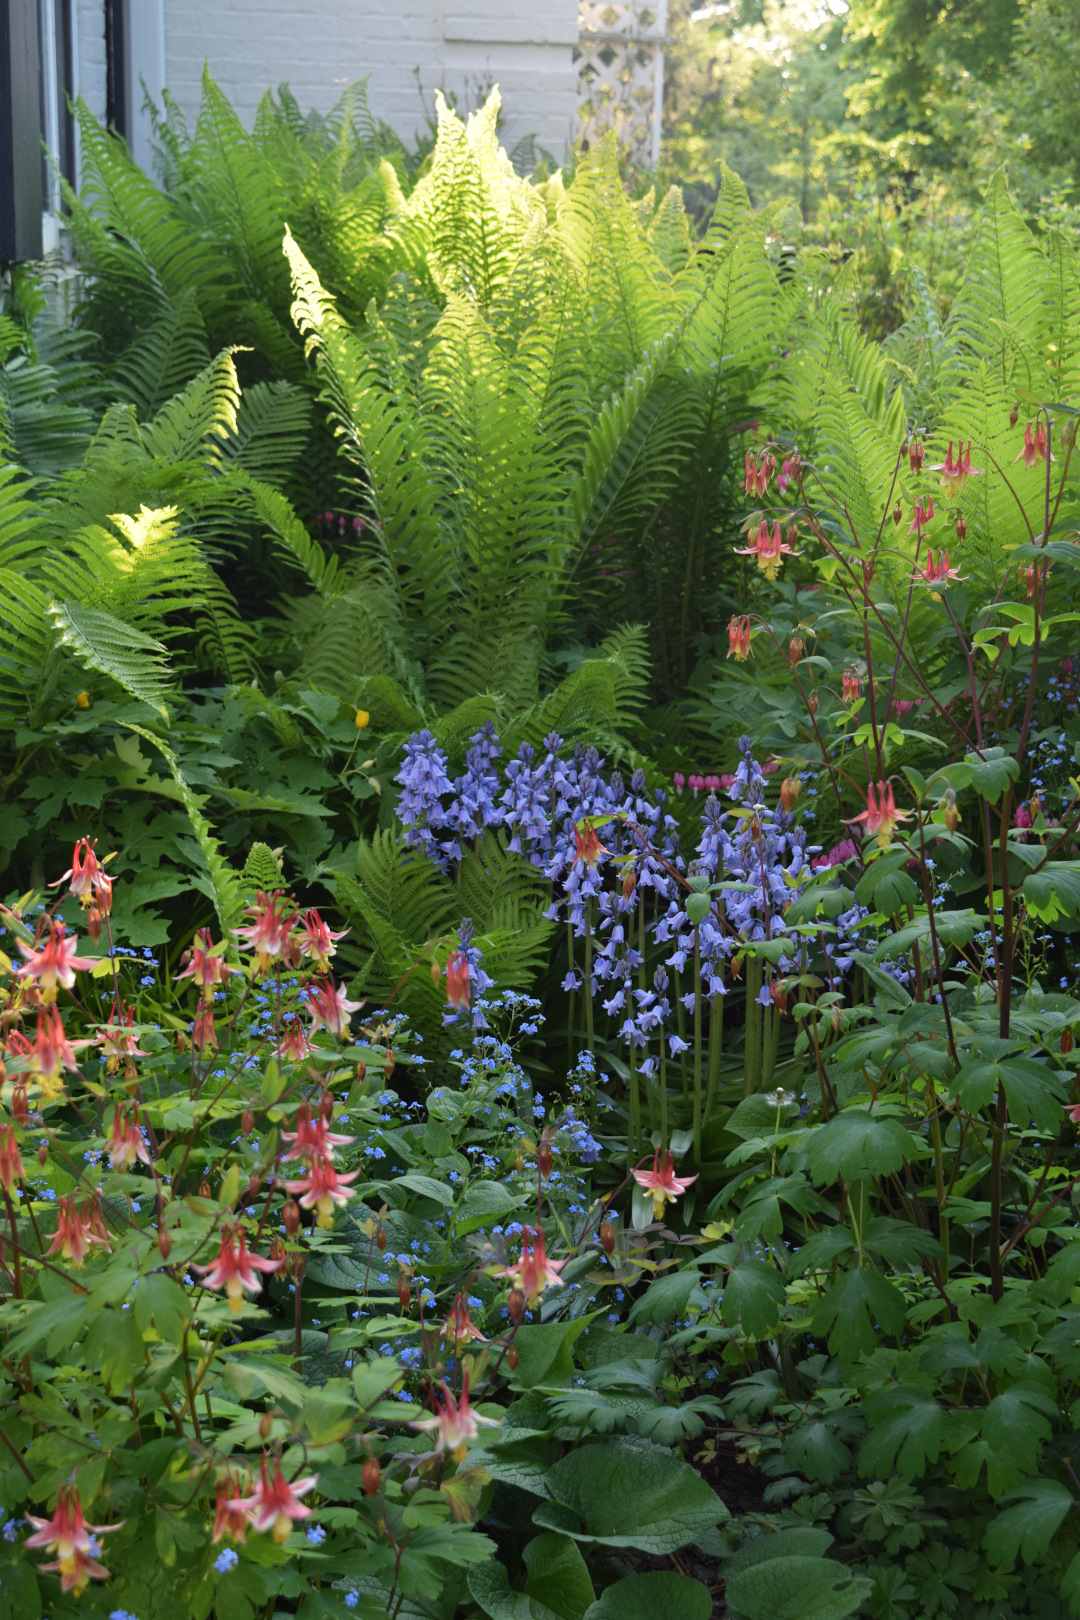 Tall ferns with blue and red flowers in front of them